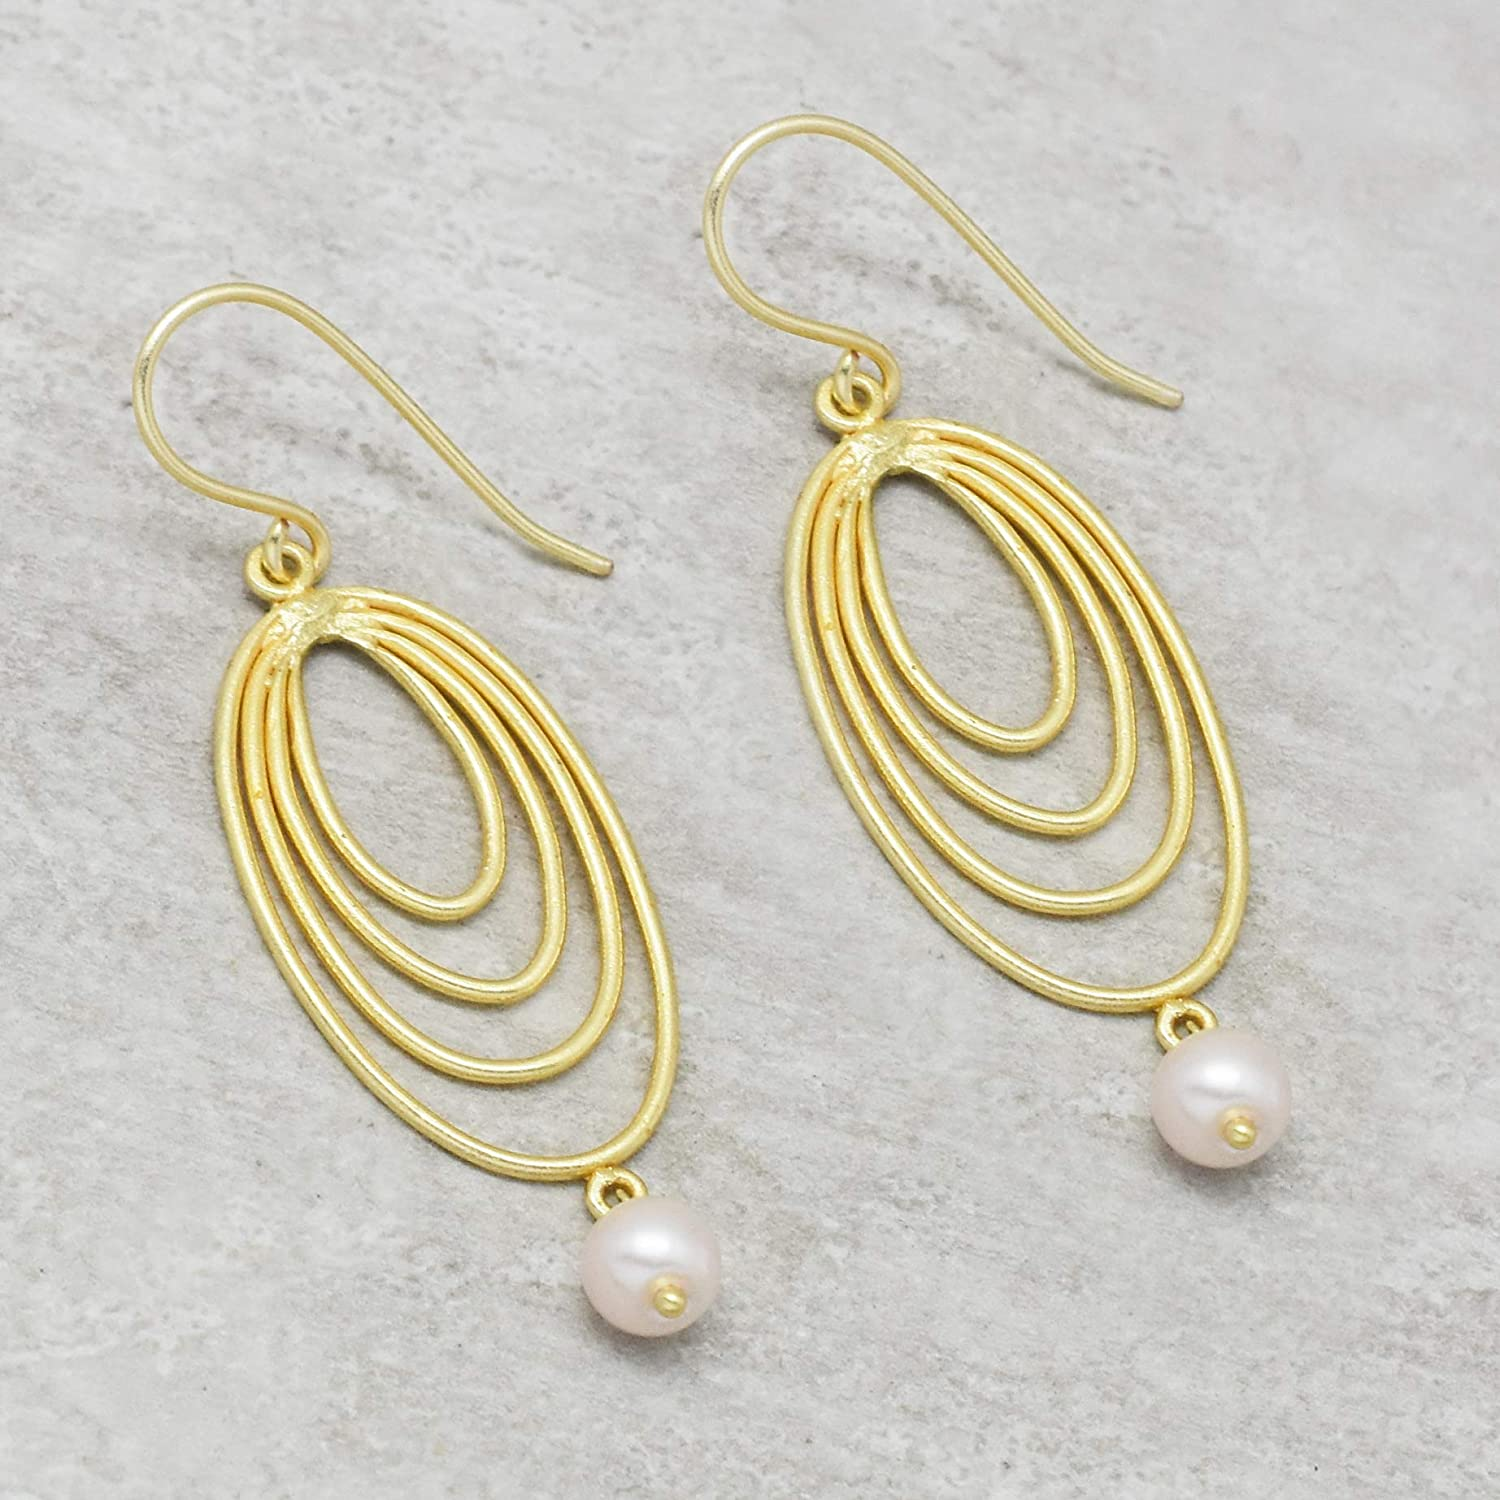 The V Collection earrings pearl beads 22k gold plated handcrafted dangling earrings for women /& girls